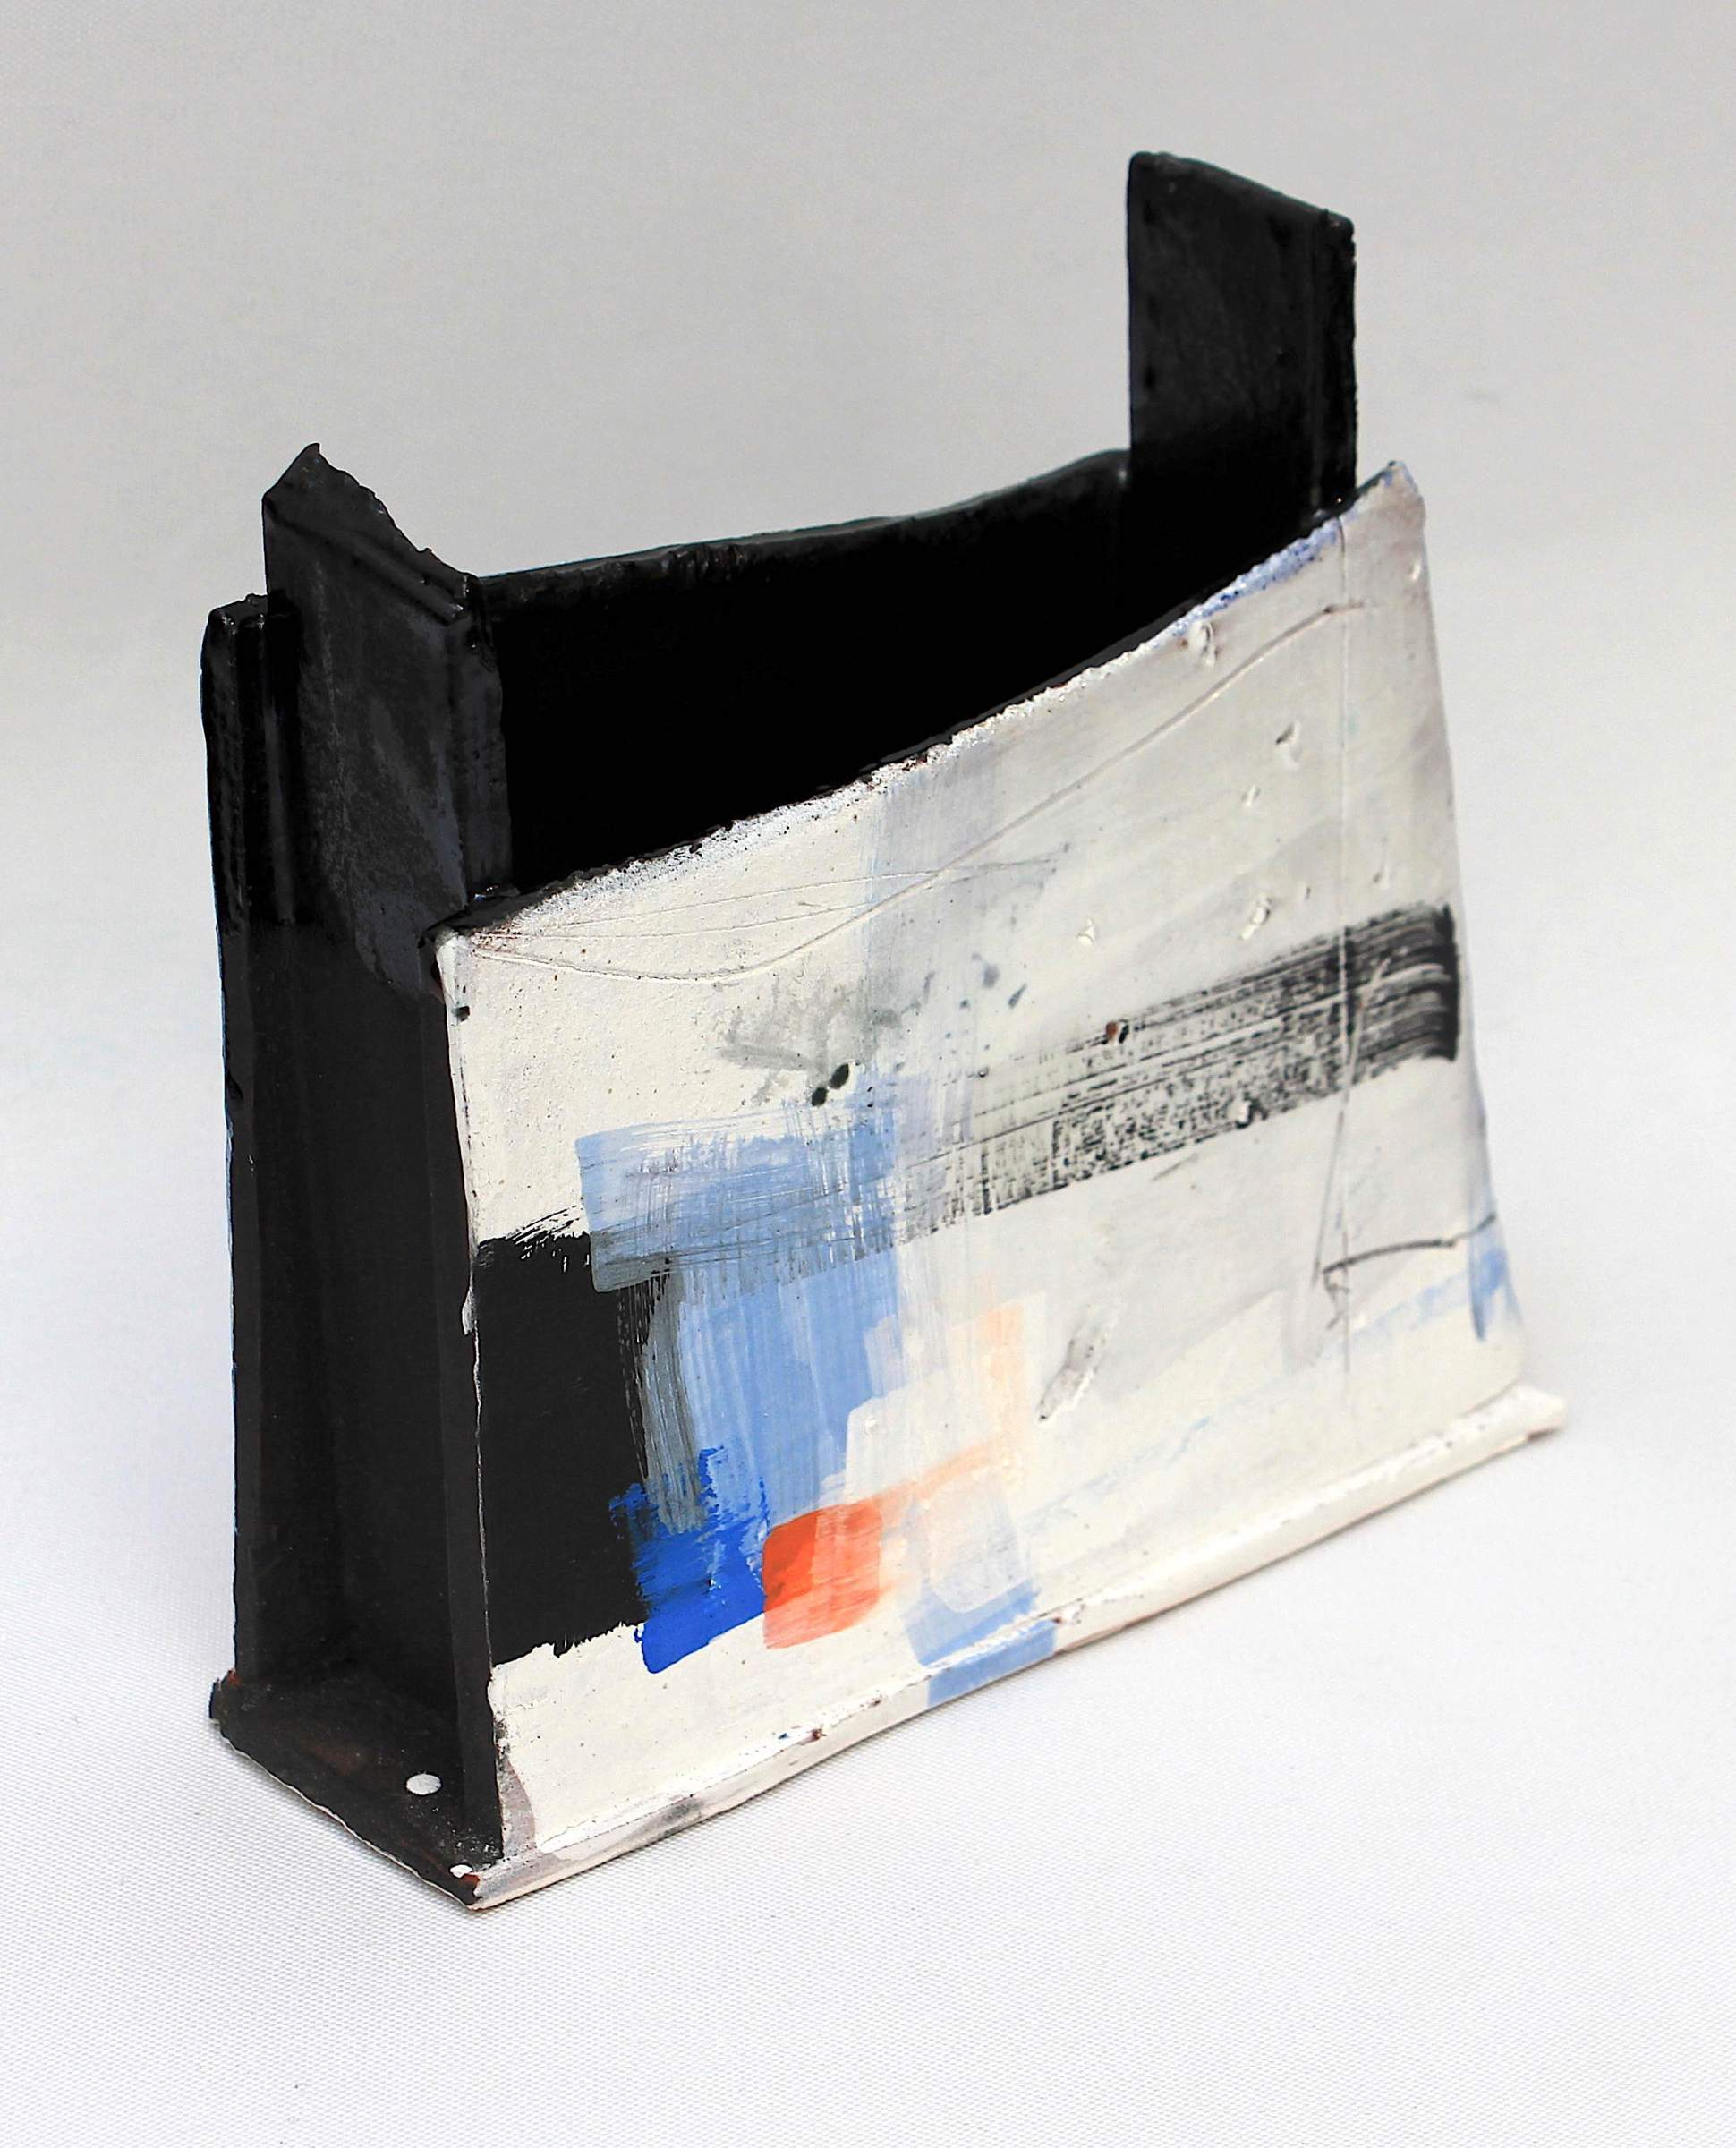 "<span class=""link fancybox-details-link""><a href=""/artists/34-barry-stedman/works/4142-barry-stedman-slab-vessel-harbour-ii-series-2017/"">View Detail Page</a></span><div class=""artist""><strong>Barry Stedman</strong></div> <div class=""title""><em>Slab Vessel 'Harbour II' Series</em>, 2017</div> <div class=""signed_and_dated"">signed by artist</div> <div class=""medium"">earthenware</div> <div class=""dimensions"">21.5 x 16 x 5 cm<br /> 8 1/2 x 6 1/4 x 2 inches</div><div class=""copyright_line"">OwnArt: £ 18 x 10 Months, 0% APR</div>"